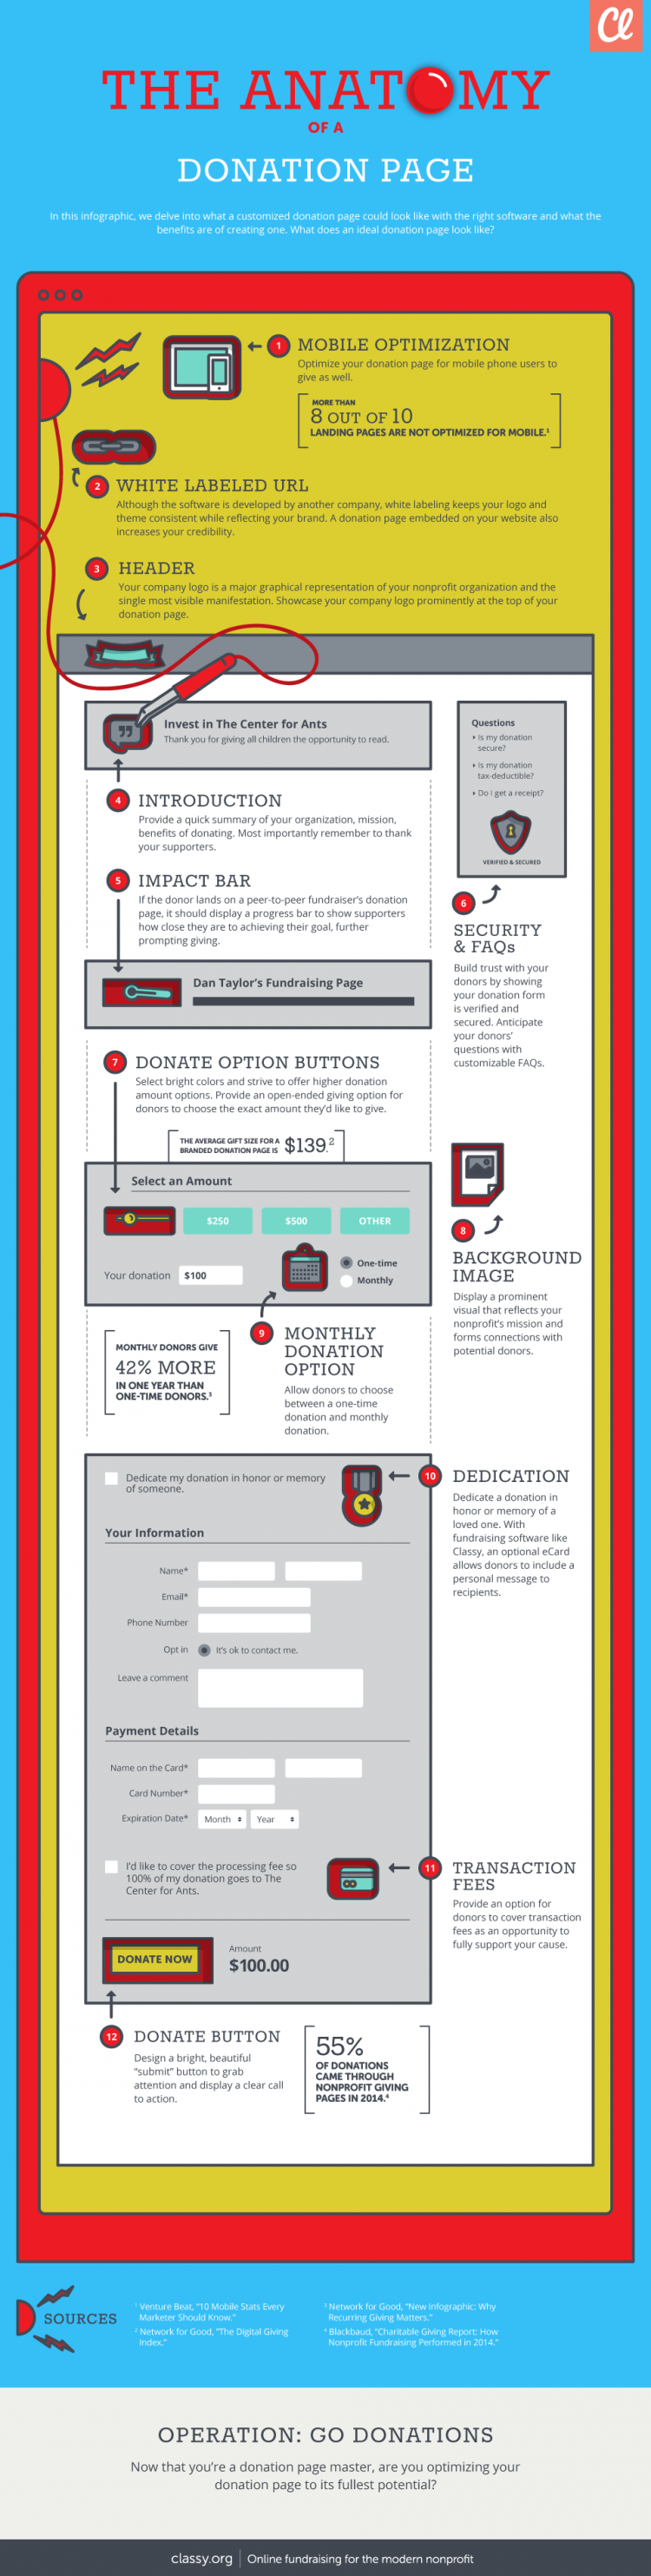 Anatomy of a Donation Page Infographic